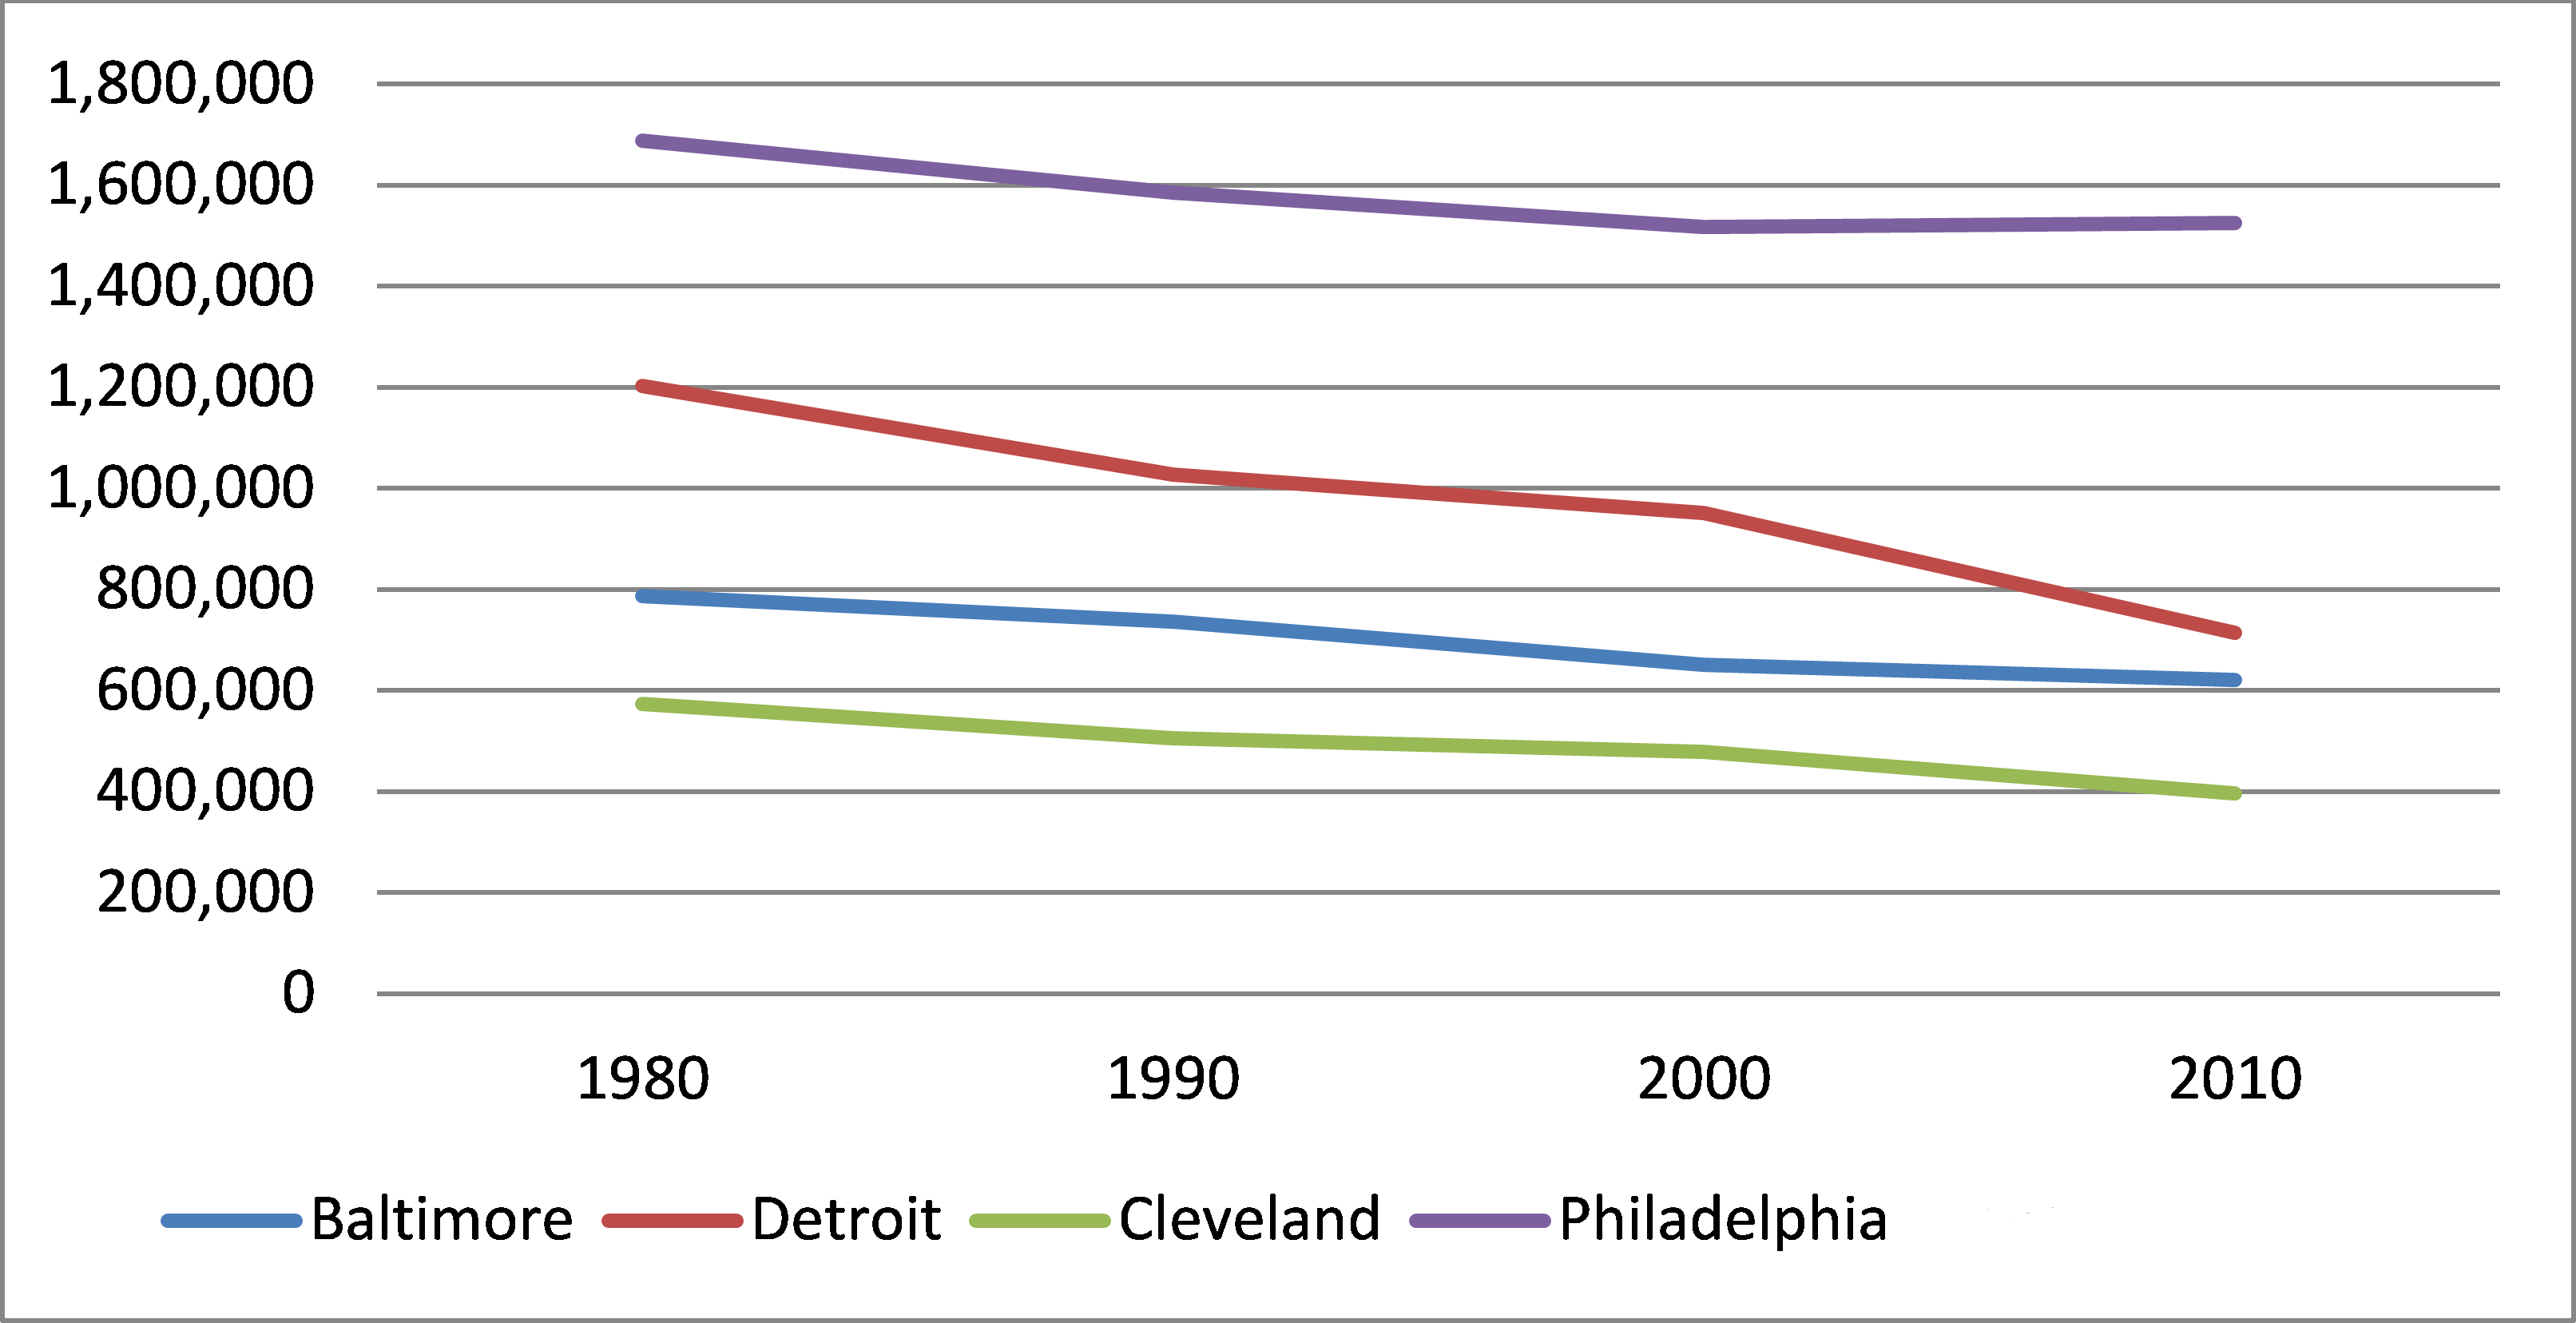 Chart showing population since 1990 in Baltimore, Detroit, Cleveland and Philadelphia. Philadelphia has the highest population.